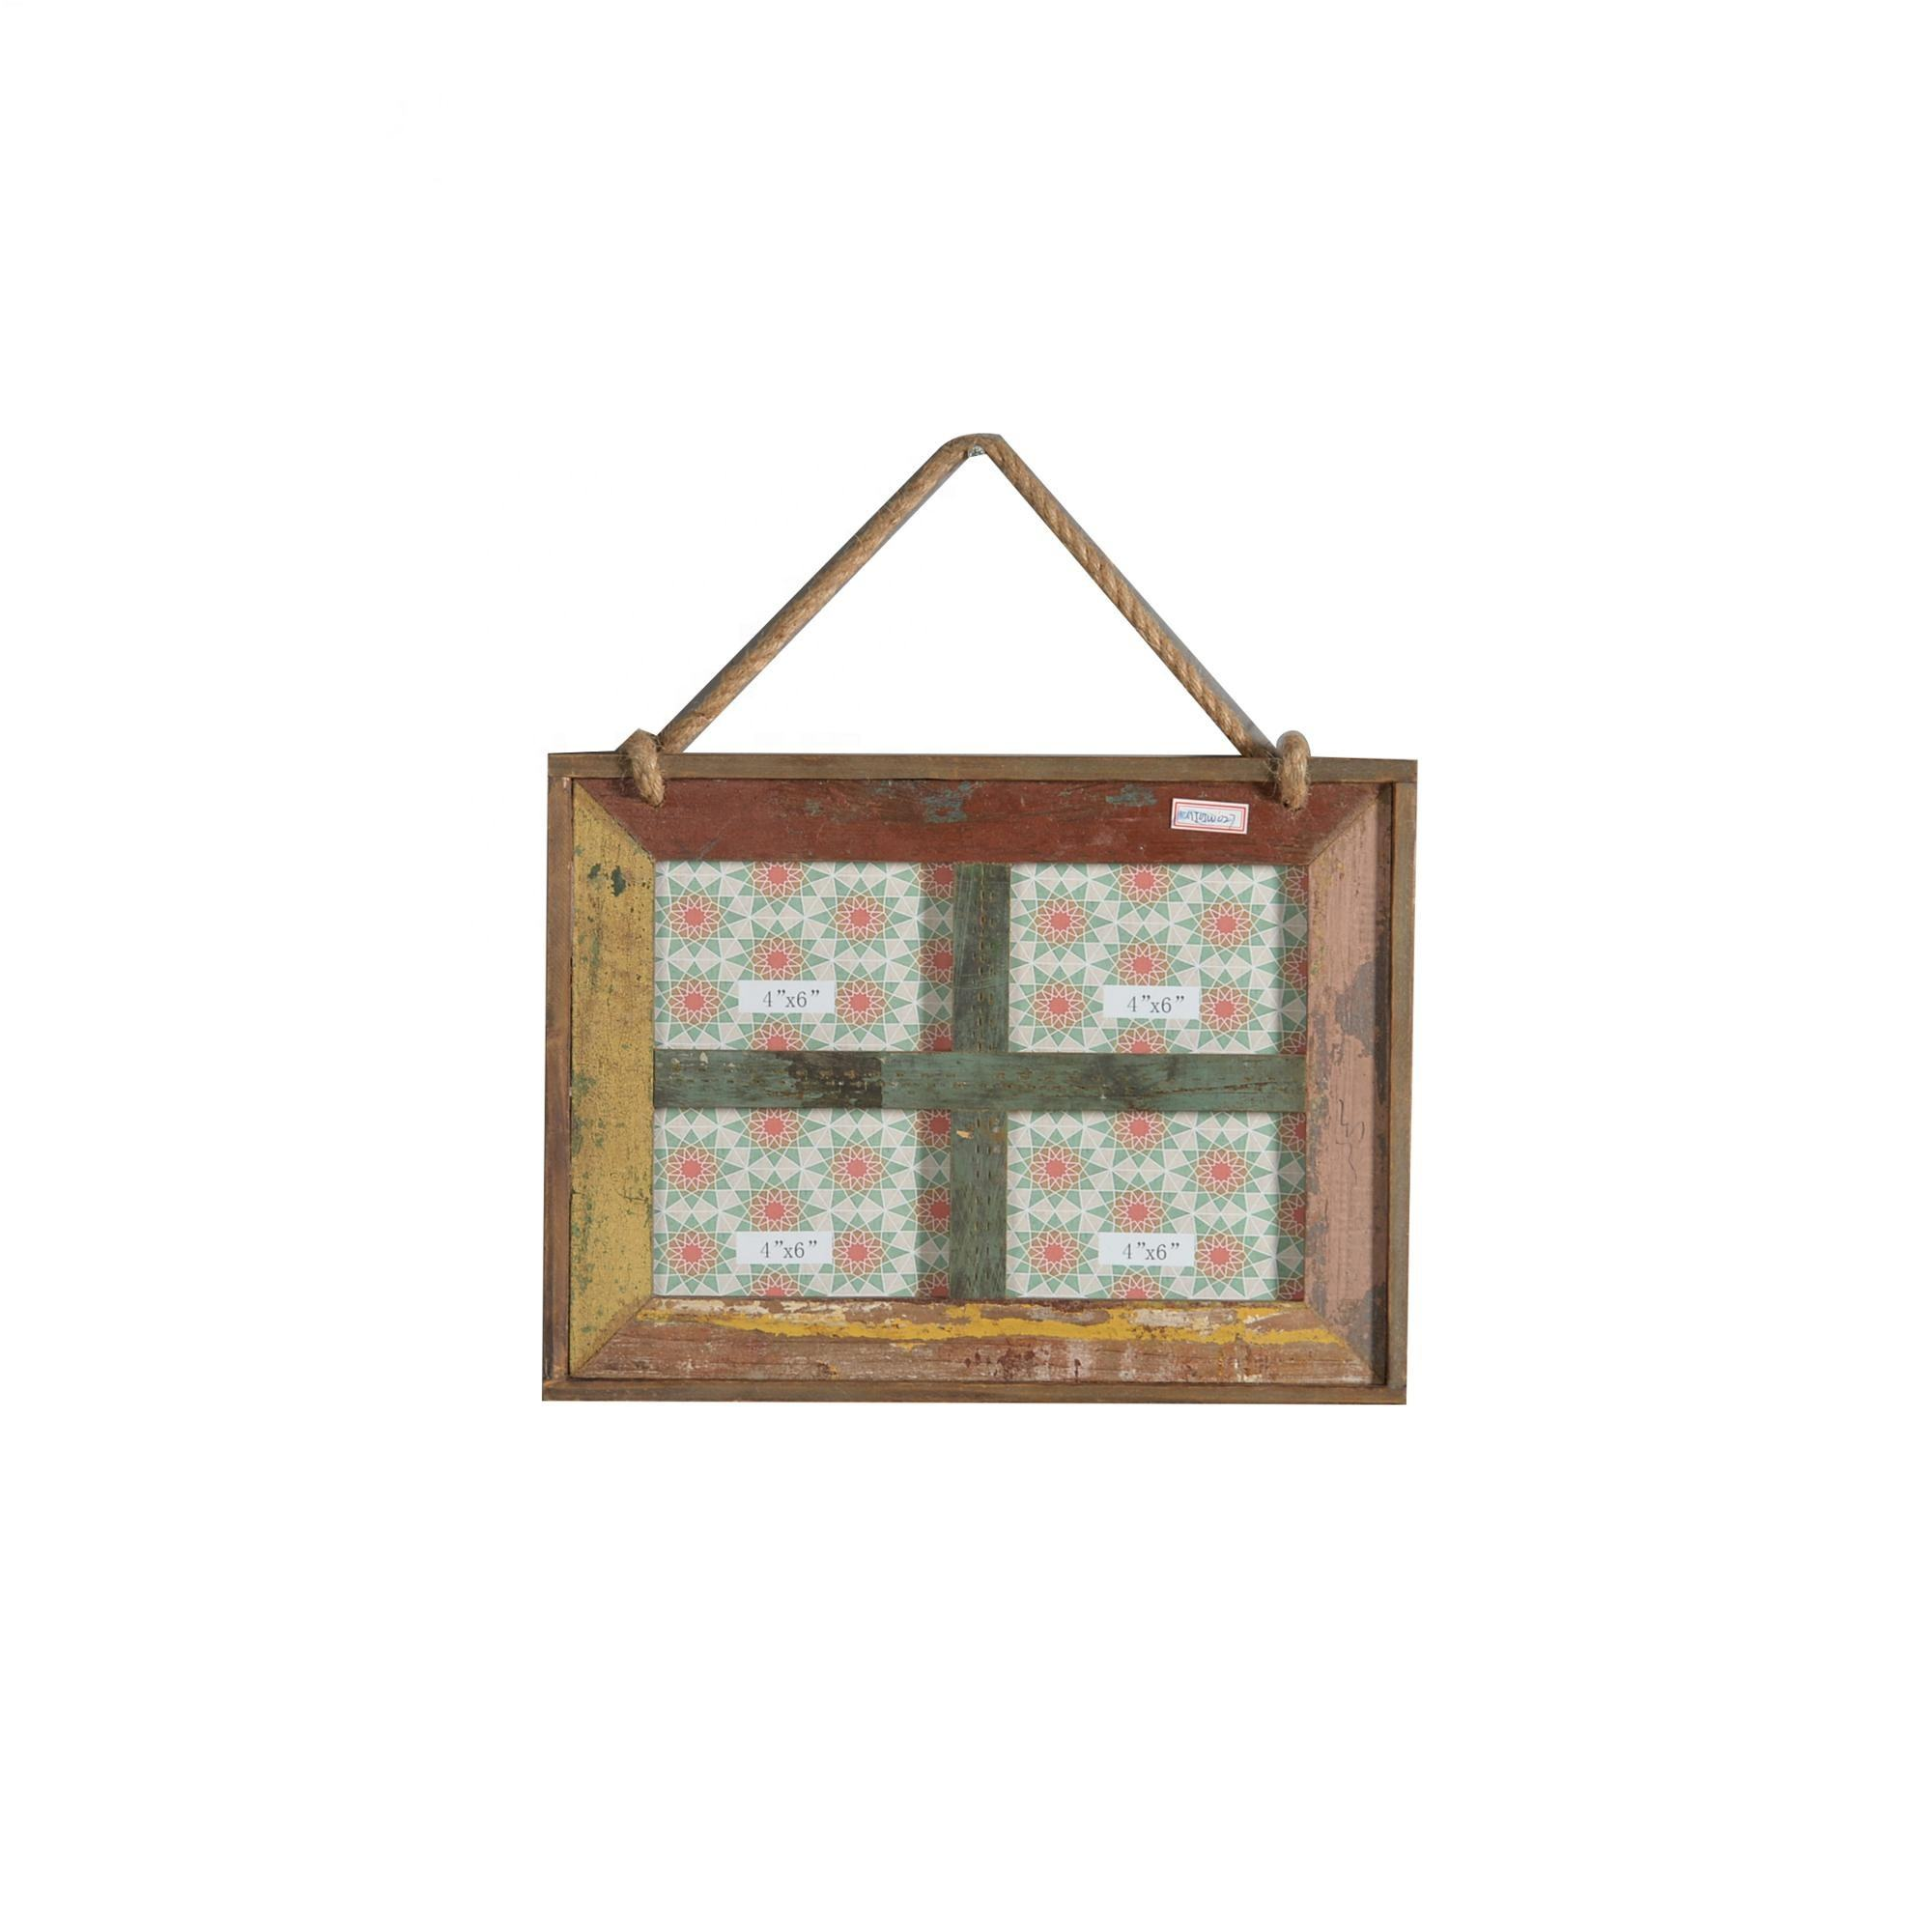 Mayco Groothandel Shabby Chic Antieke Decoratieve Houten <span class=keywords><strong>4X6</strong></span> Muur Opknoping Foto Frames